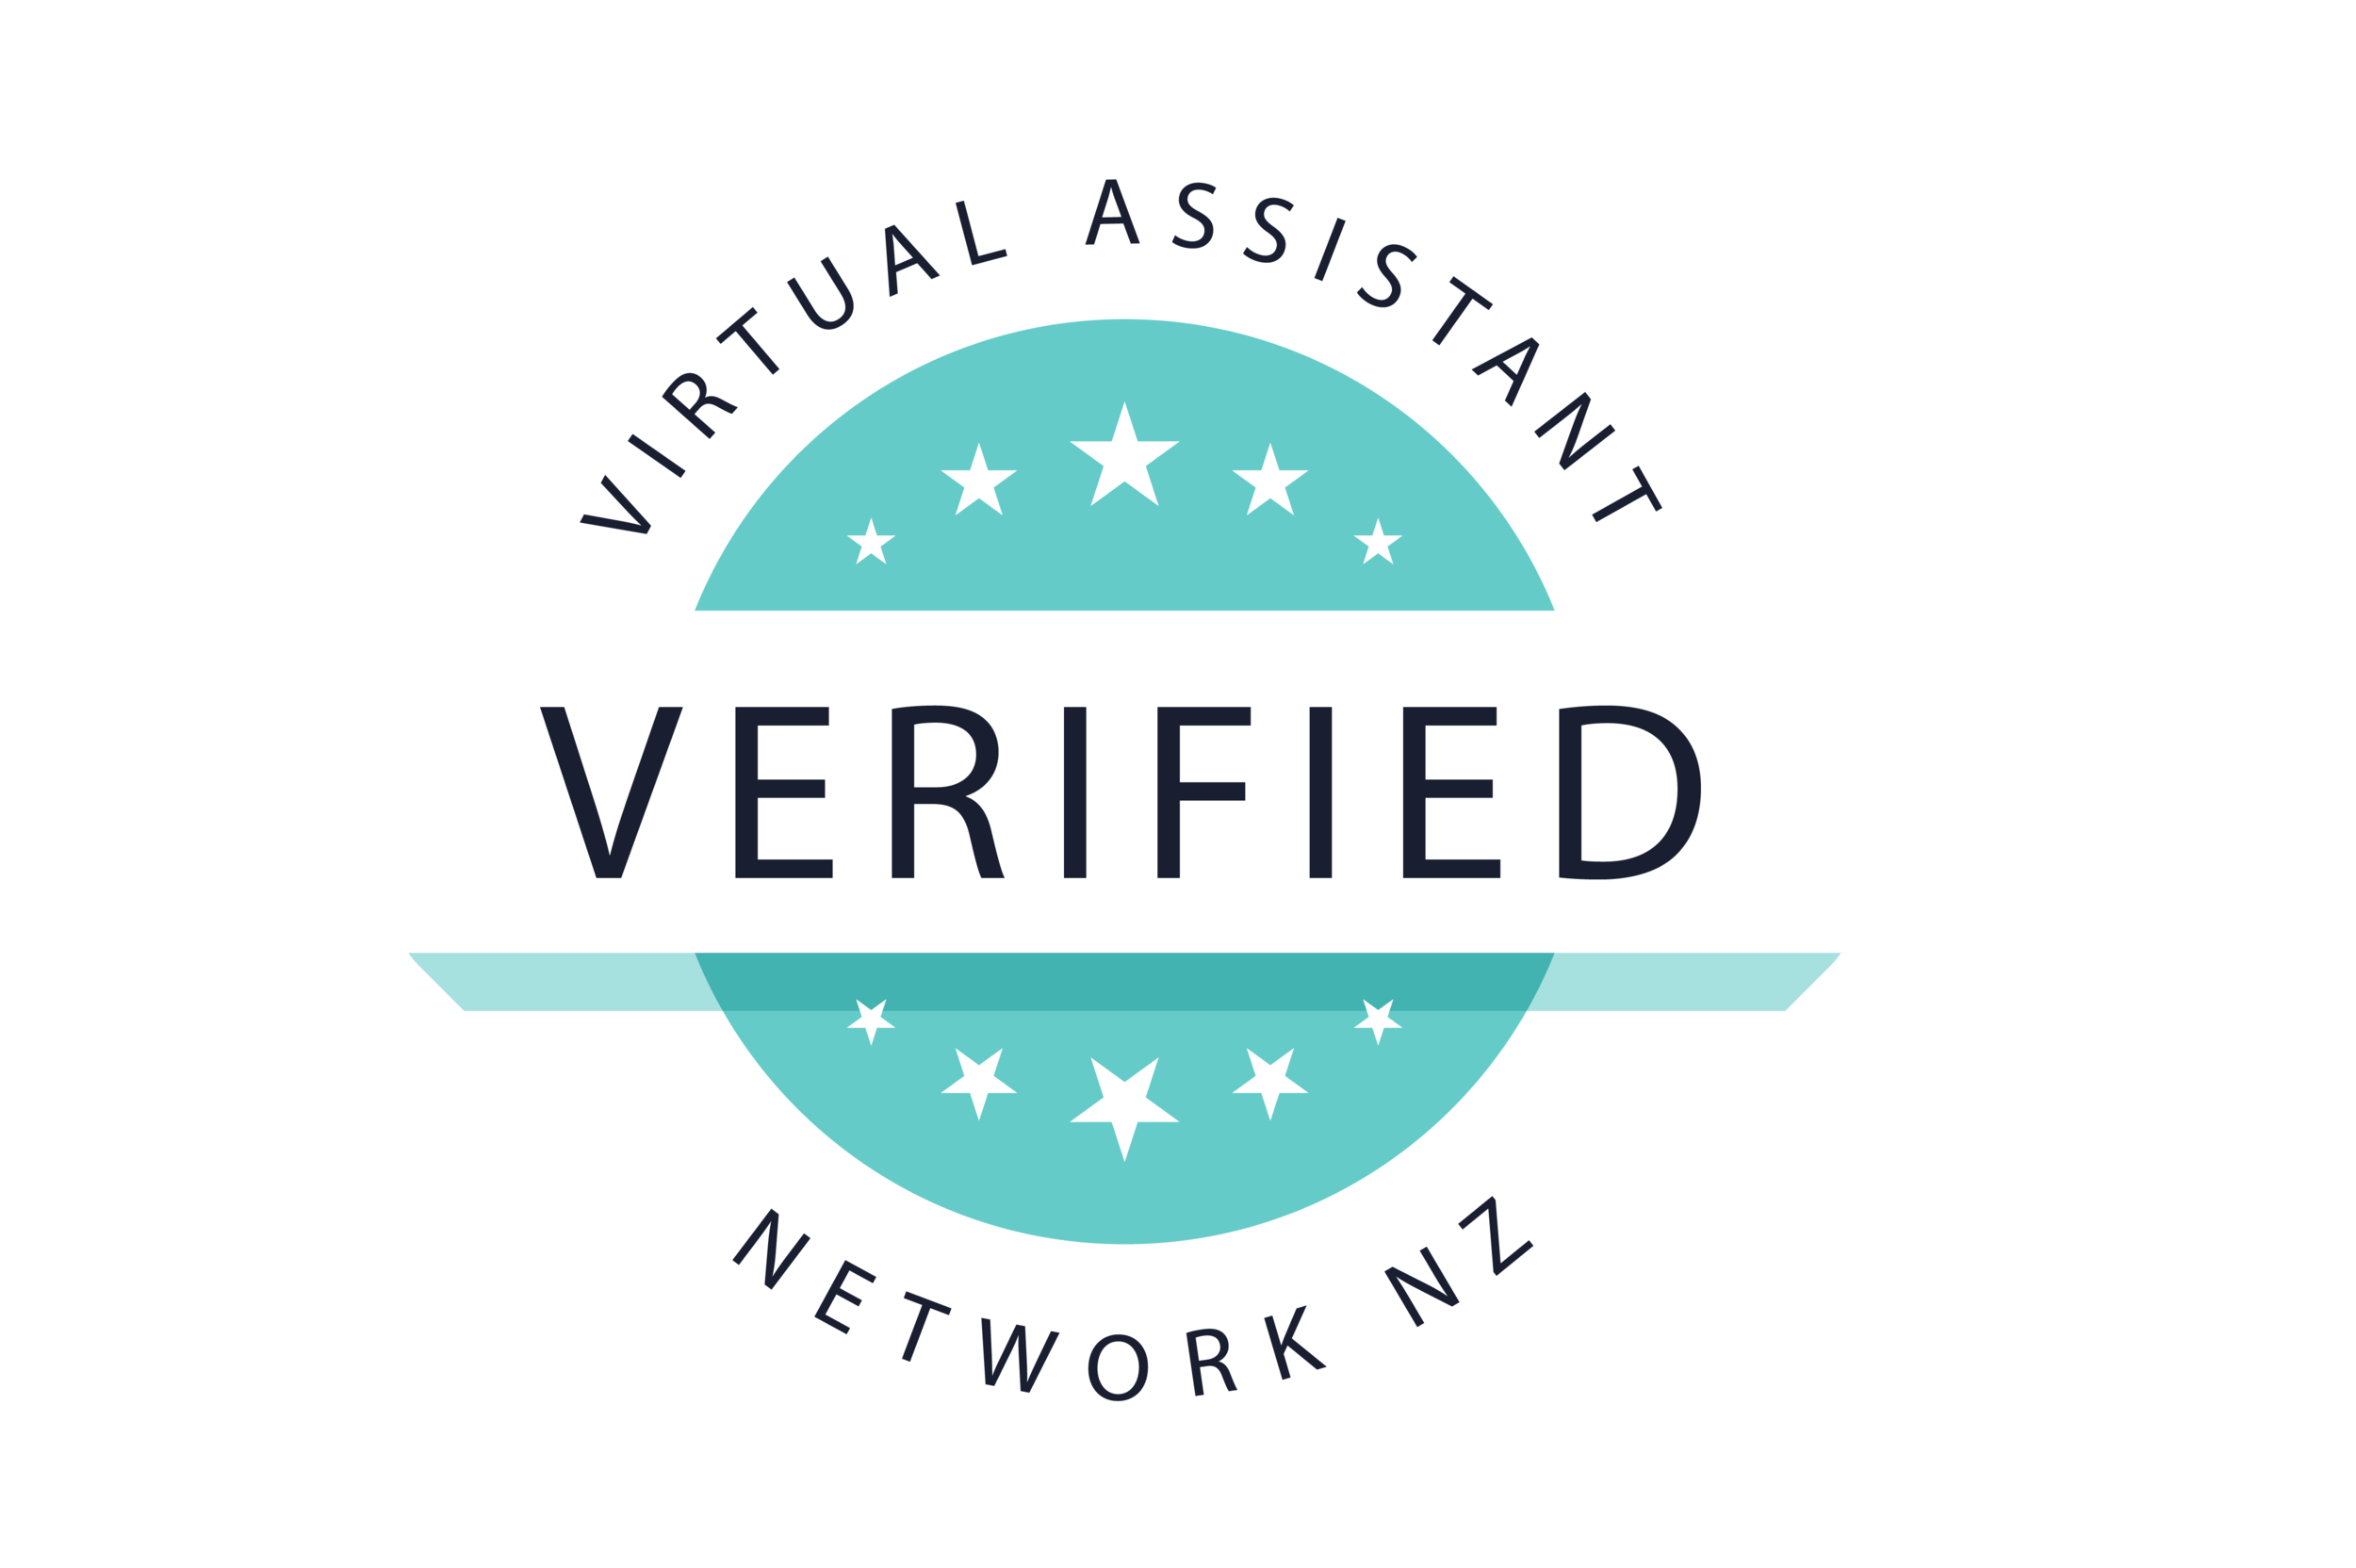 Virtual_Assistant_Network_NZ_Verified_Badge_White-03.png